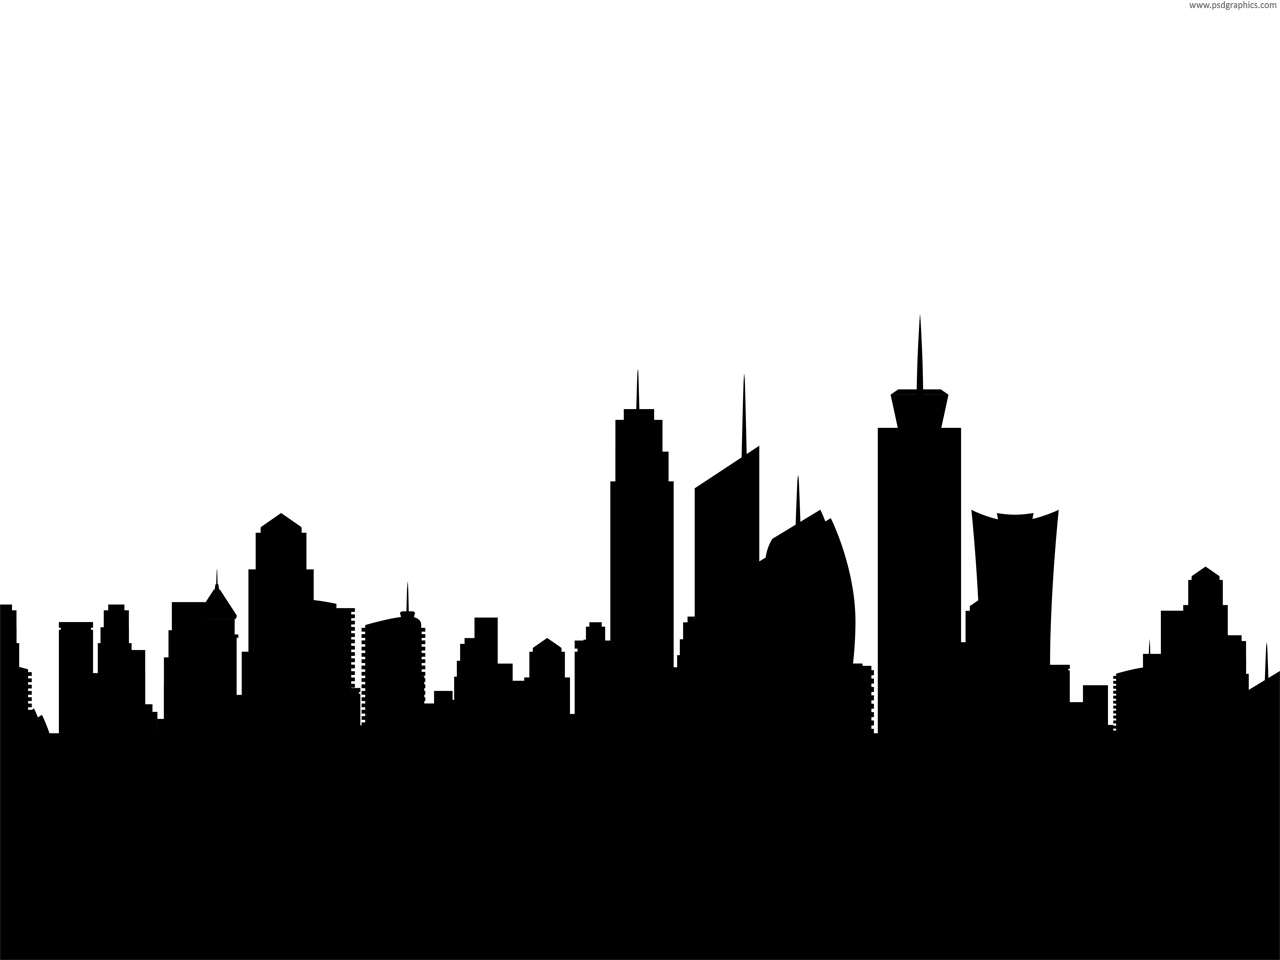 Pittsburgh Skyline Silhouette at GetDrawings.com.